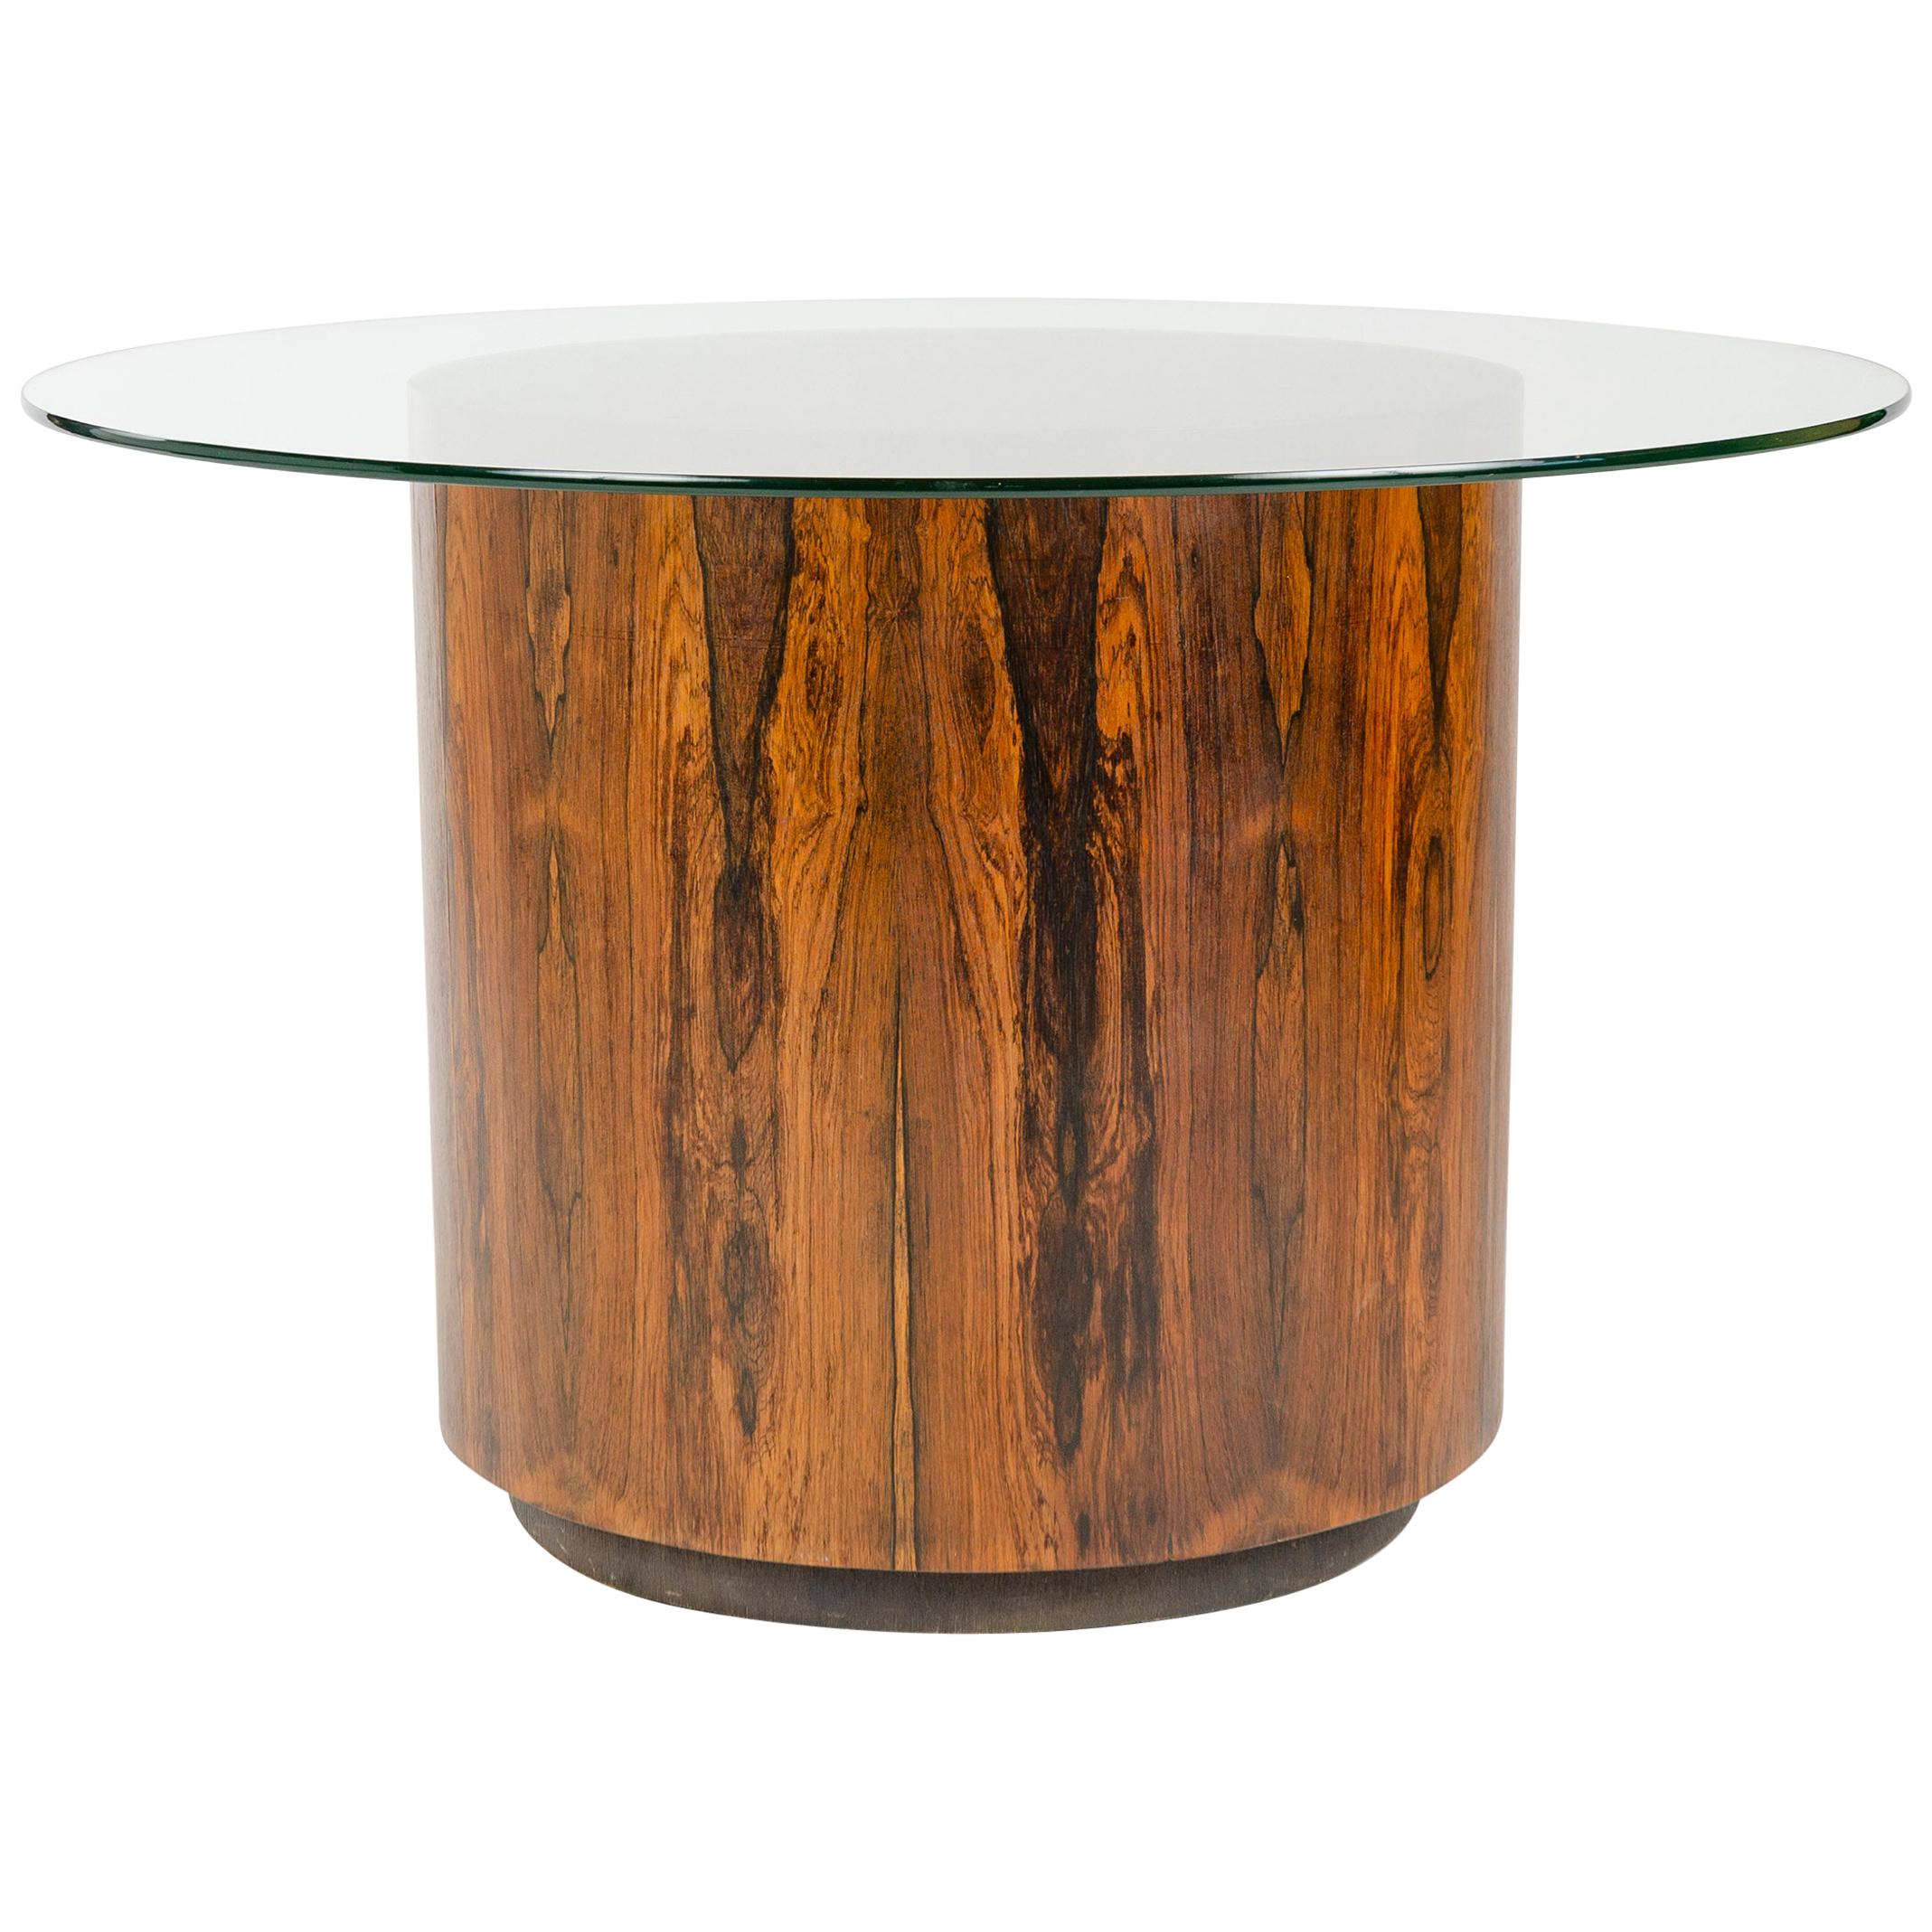 1950s Game or Dining Table in the Style of Milo Baughman